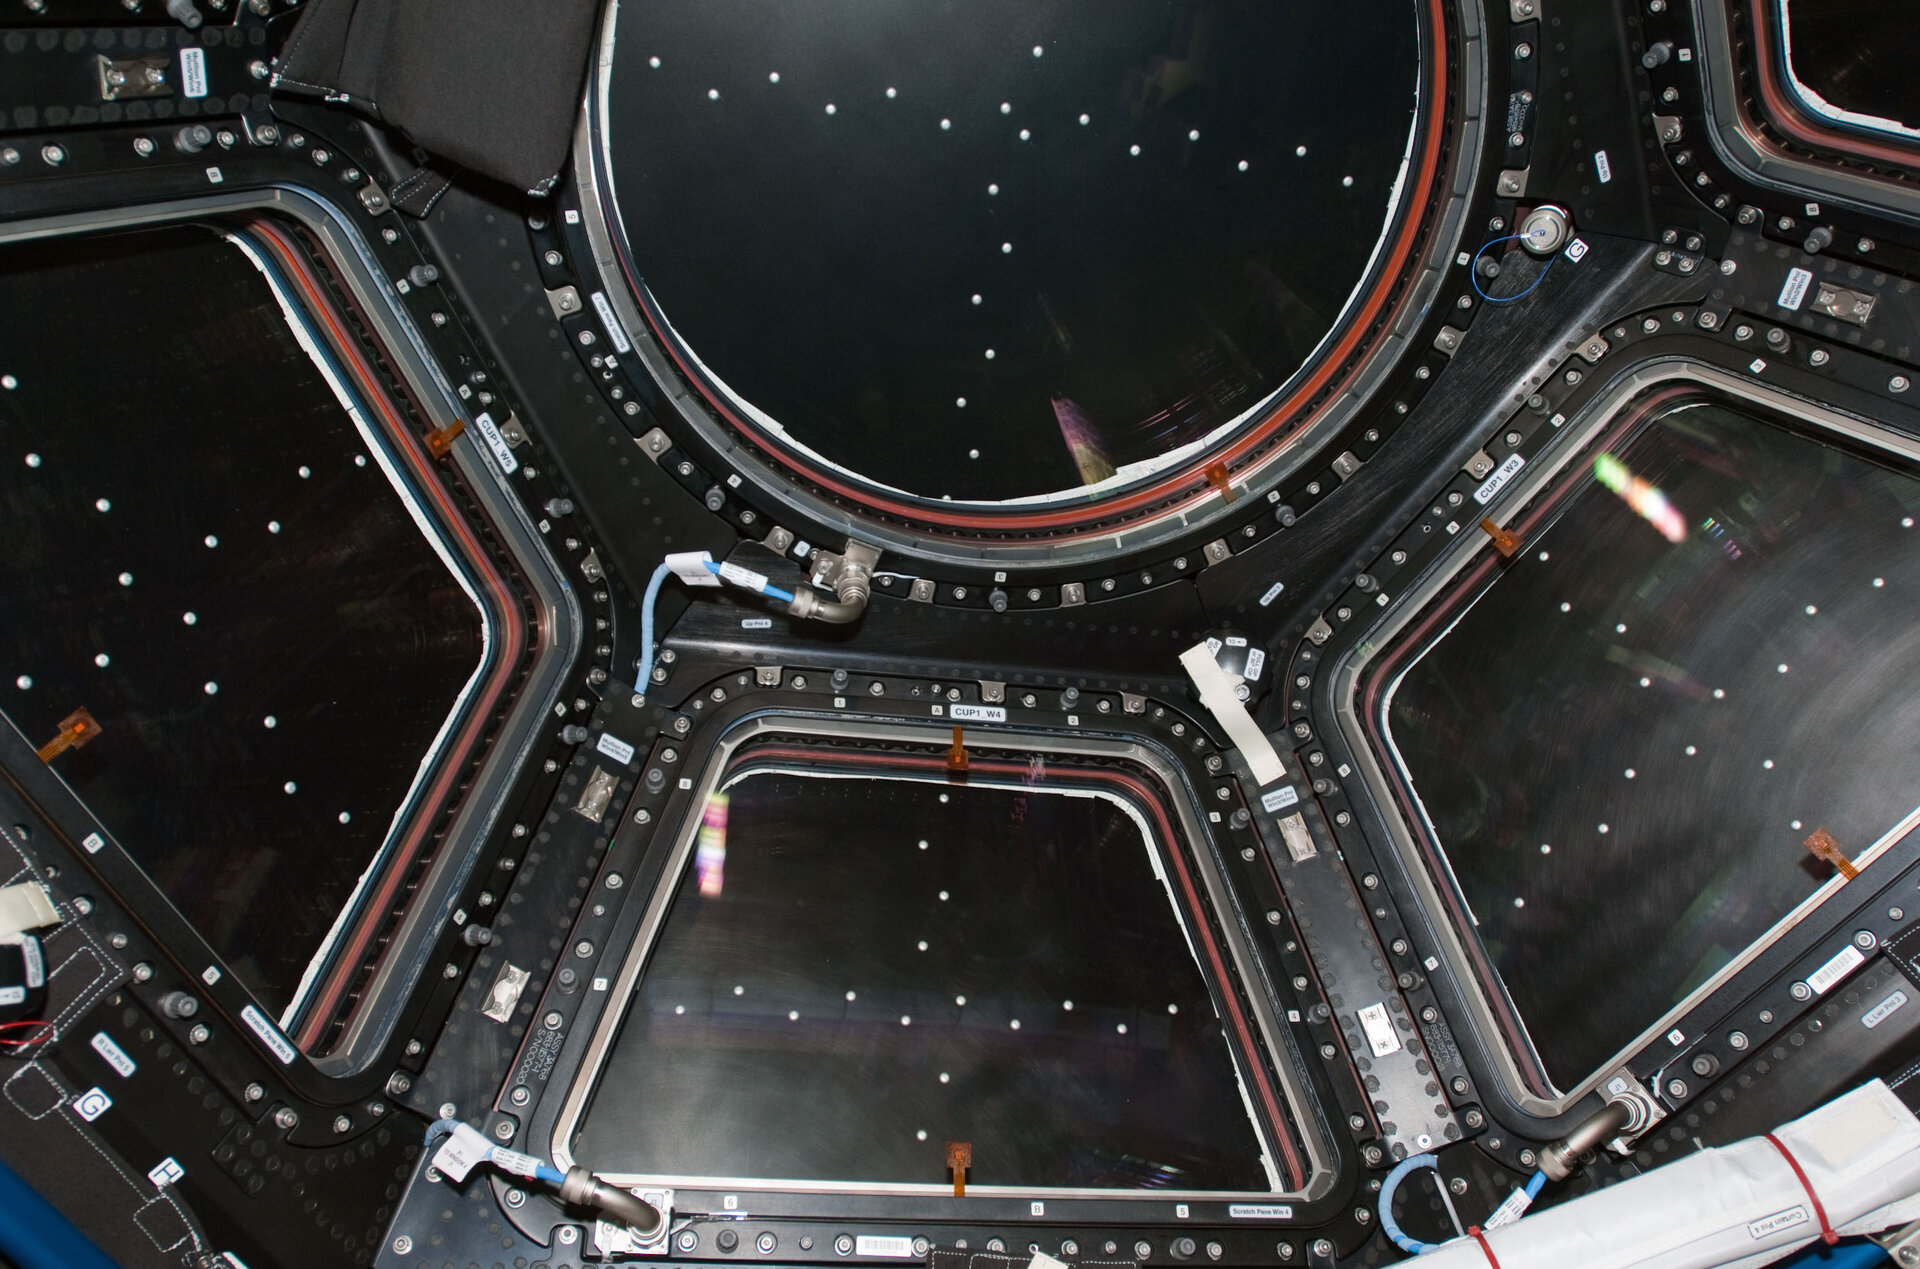 Cupola with shutters closed seen from inside